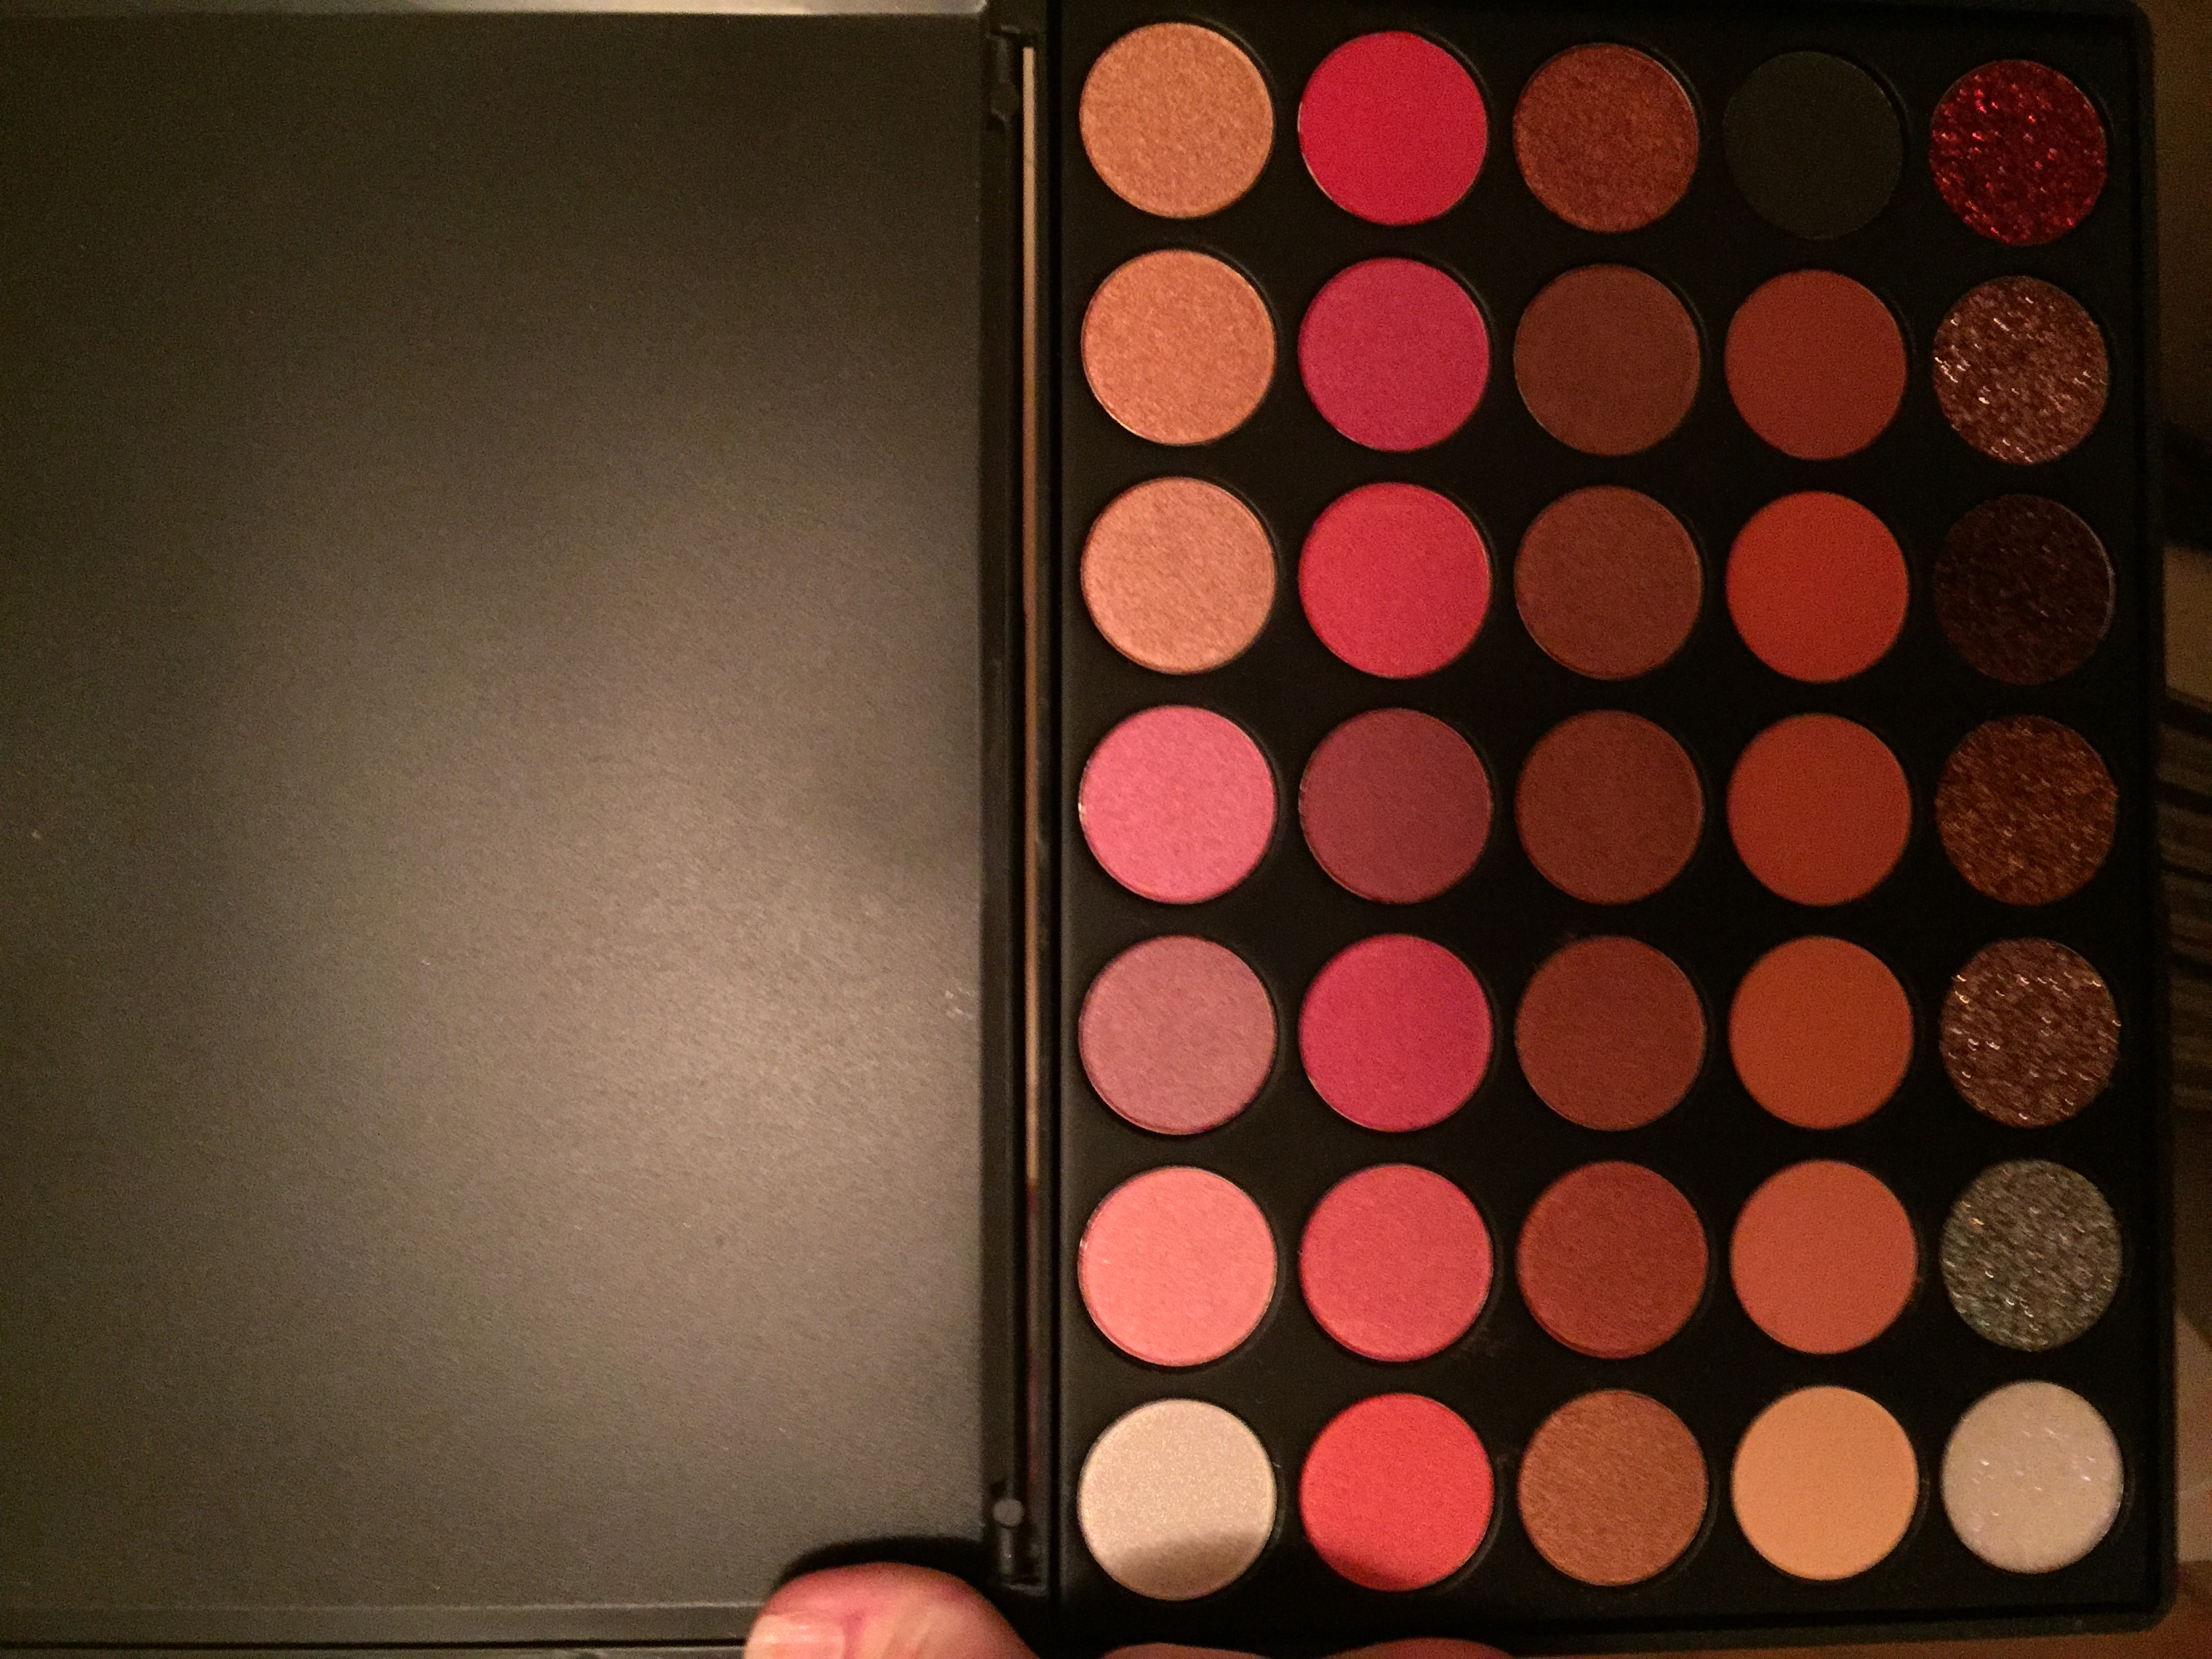 The FindinBeauty 35GF EyeShadow Palette